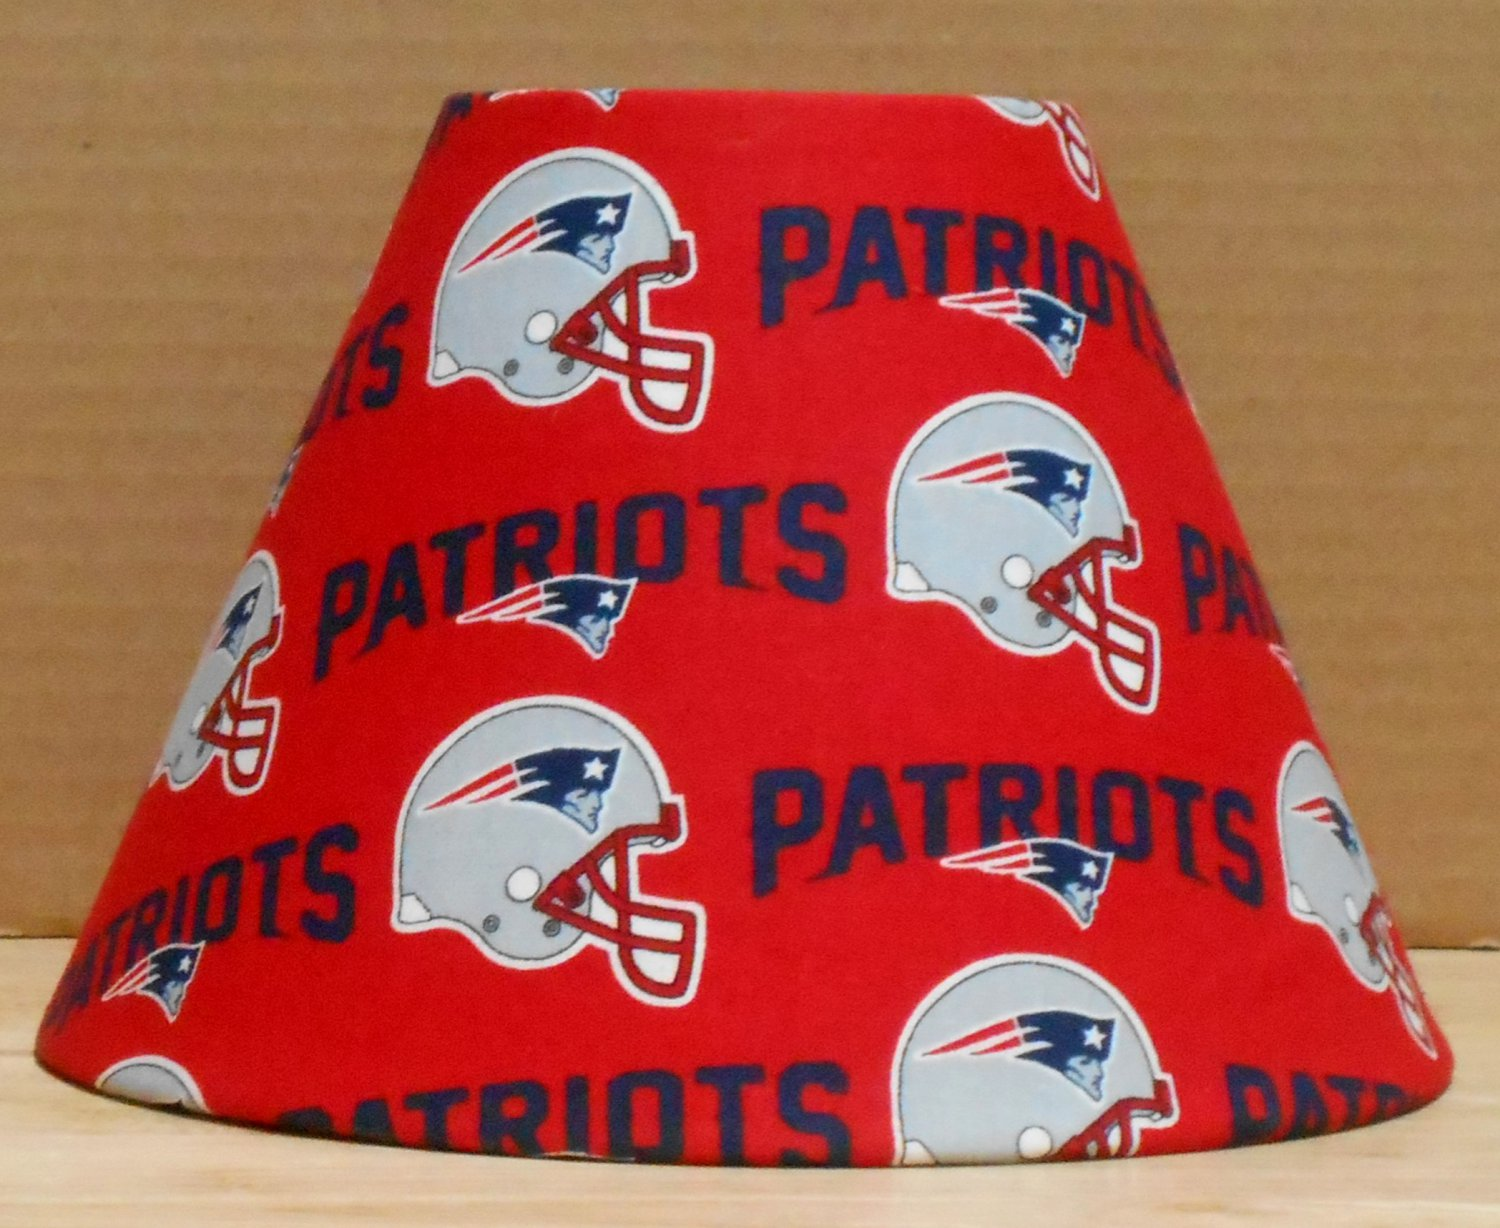 New england patriots desk lampw england patriots coors light keg new england patriots fabric lamp shade lampshade sports mozeypictures Image collections